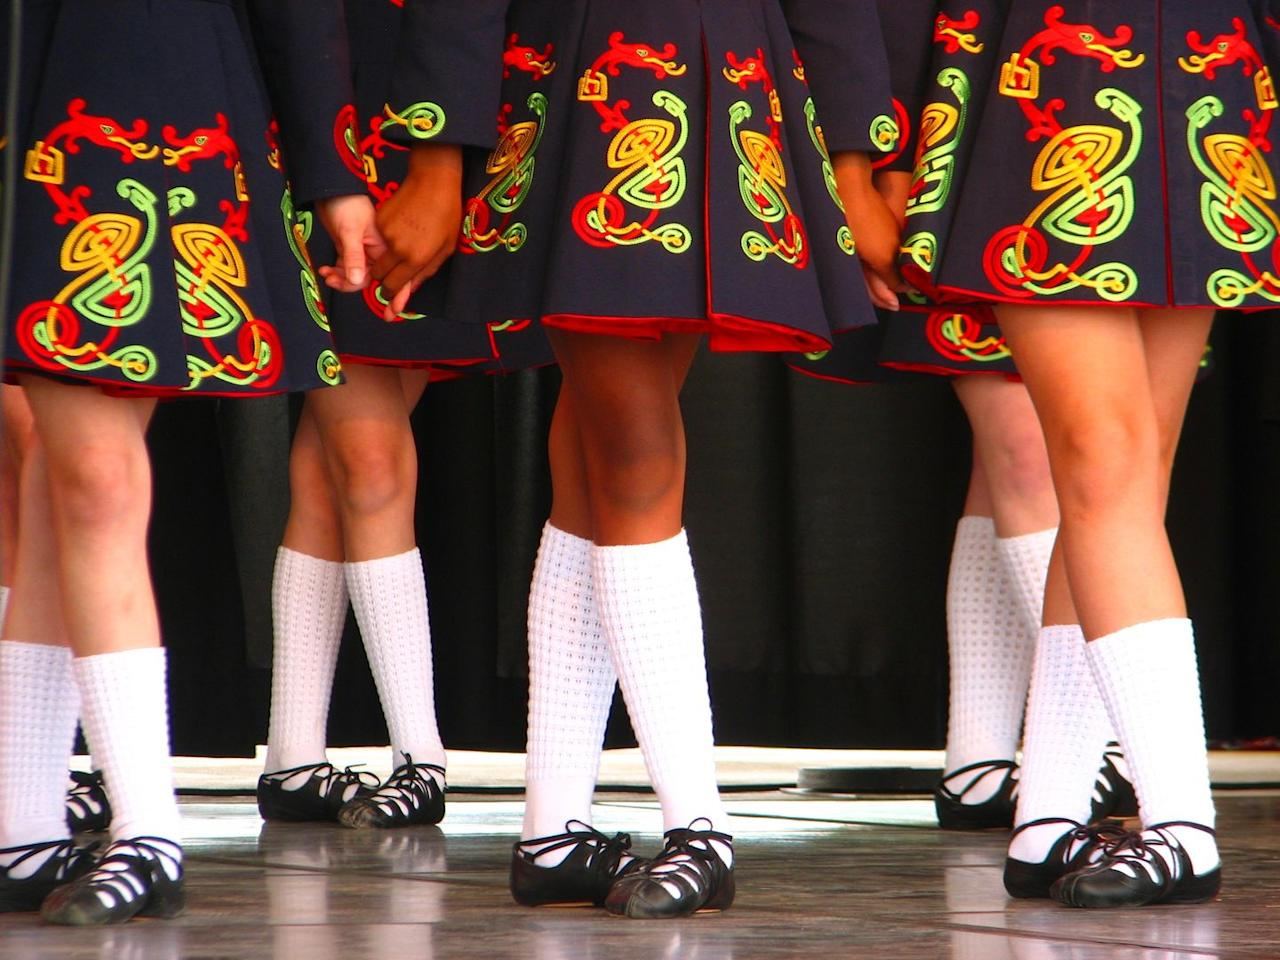 <p>A treat on St. Patrick's Day is to catch Irish stepdancers as they glide, leap, and jump across the floor. Many parades or festivals are sure to have performances.</p>